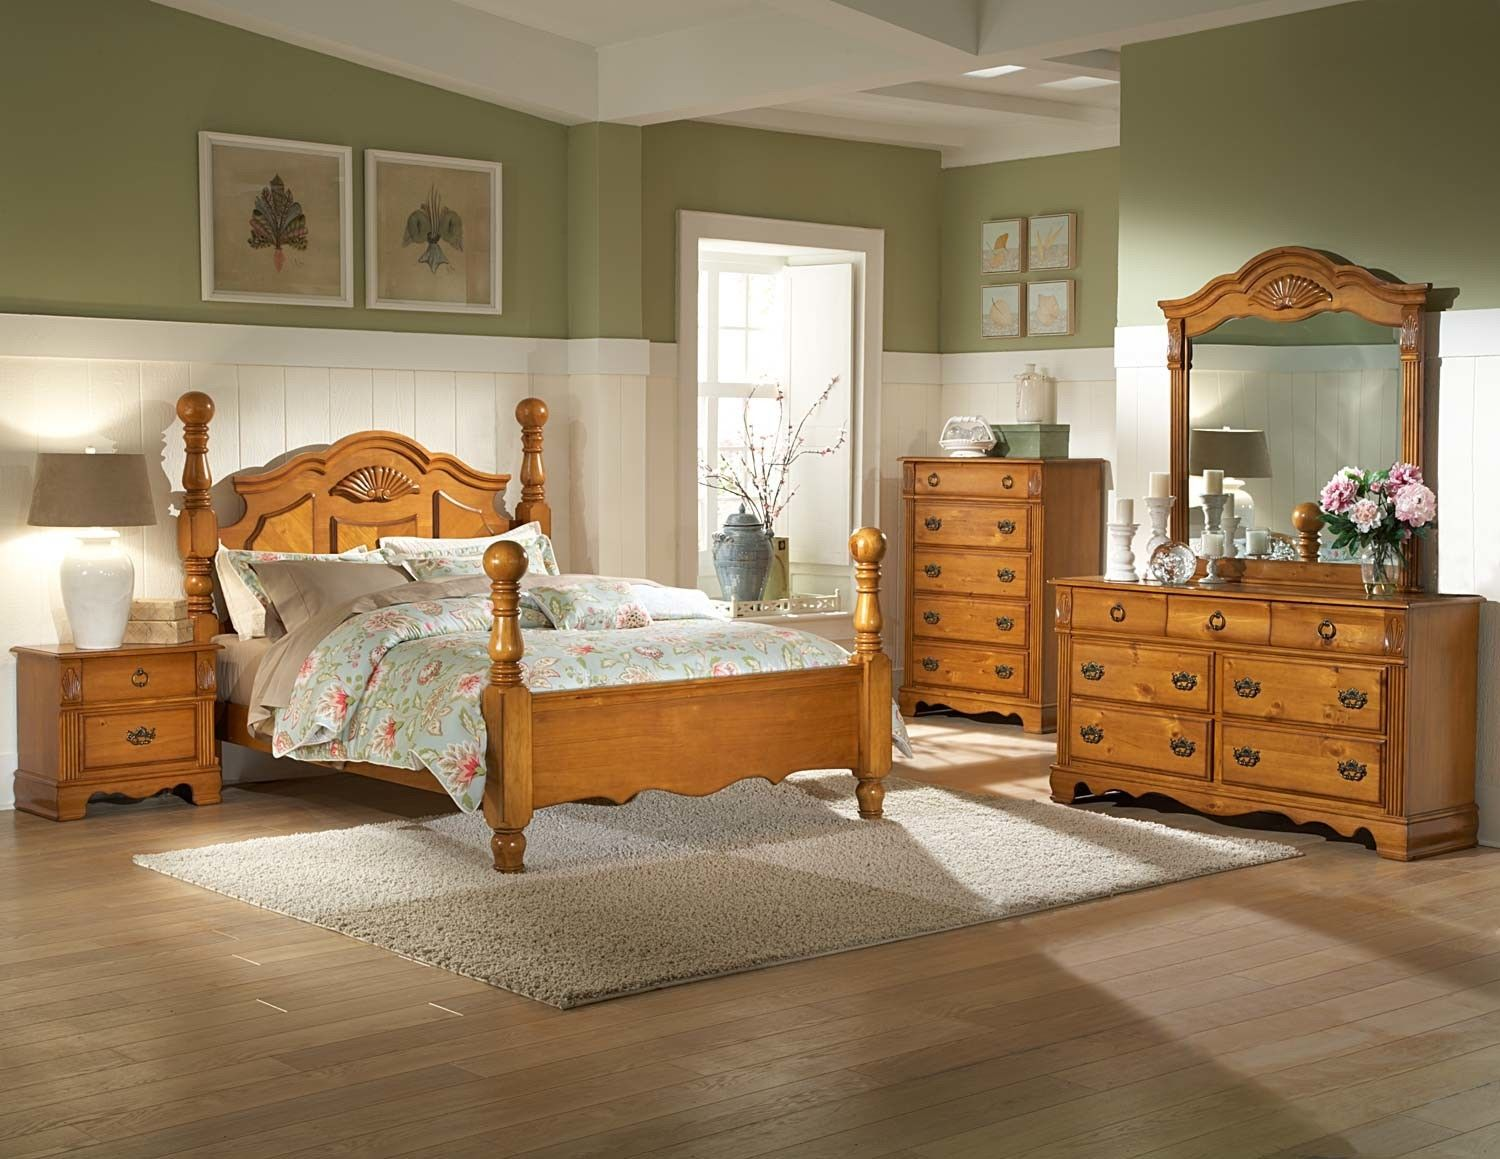 The Important Things When Selecting Pine Bedroom Furniture Set Pine Bedroom Furniture Pine Bedroom Wooden Bedroom